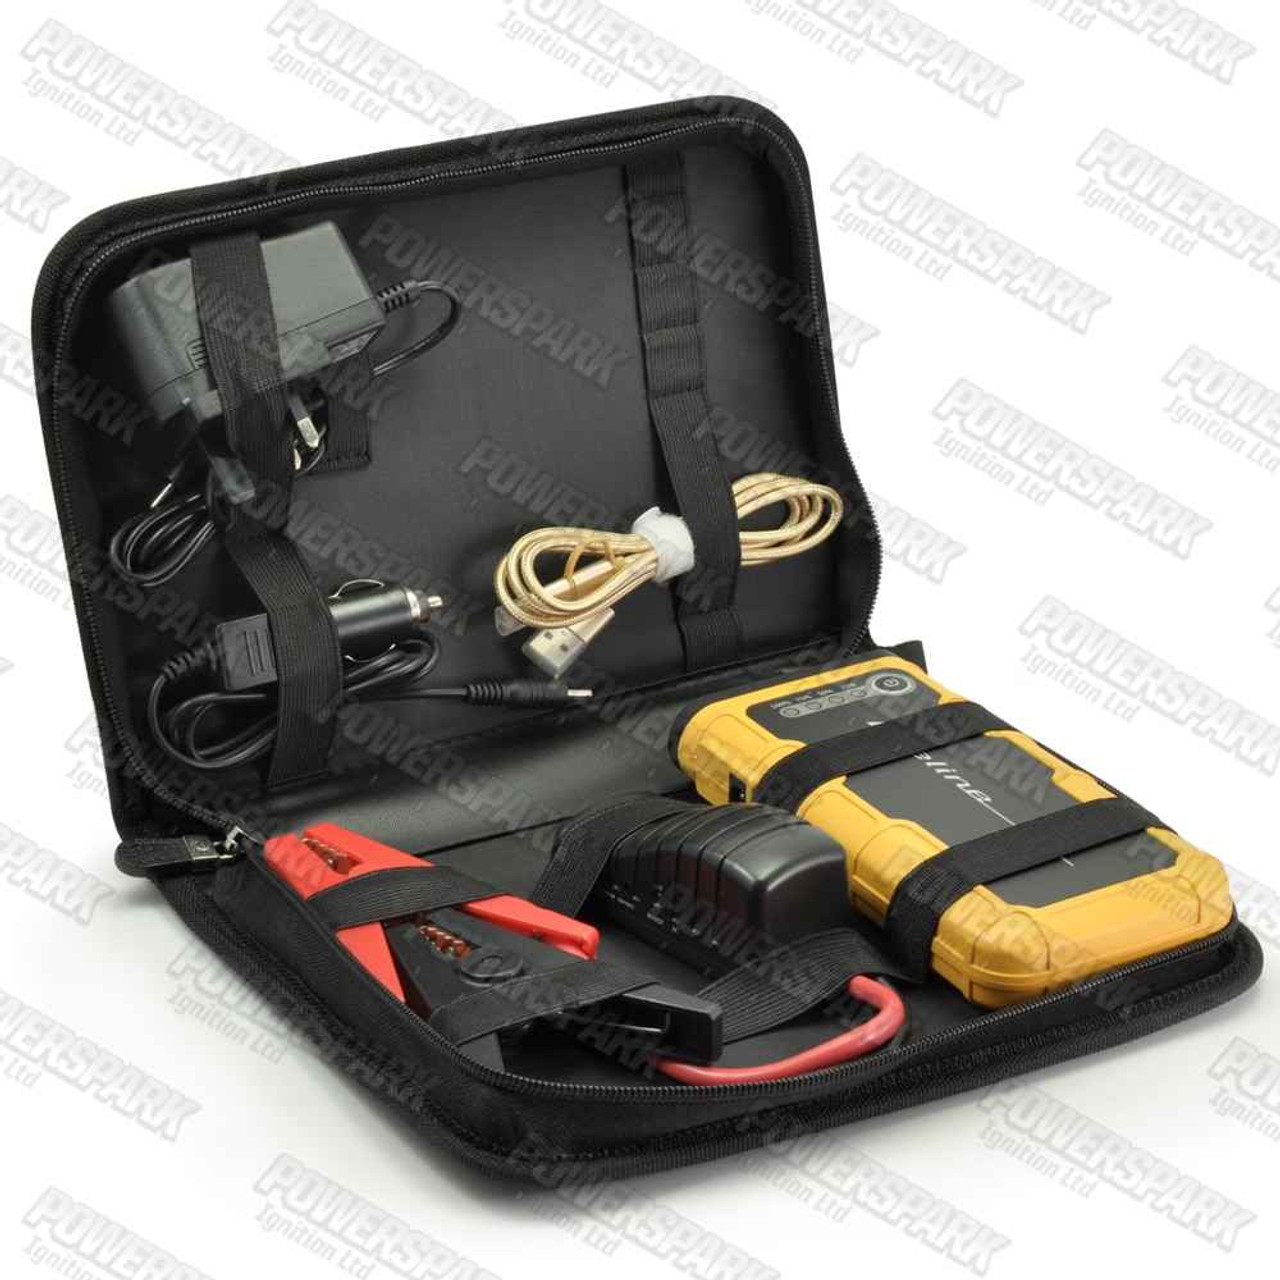 Lifeline Lifeline Ampstore Classic Car Jump Starter and Emergency Power Pack